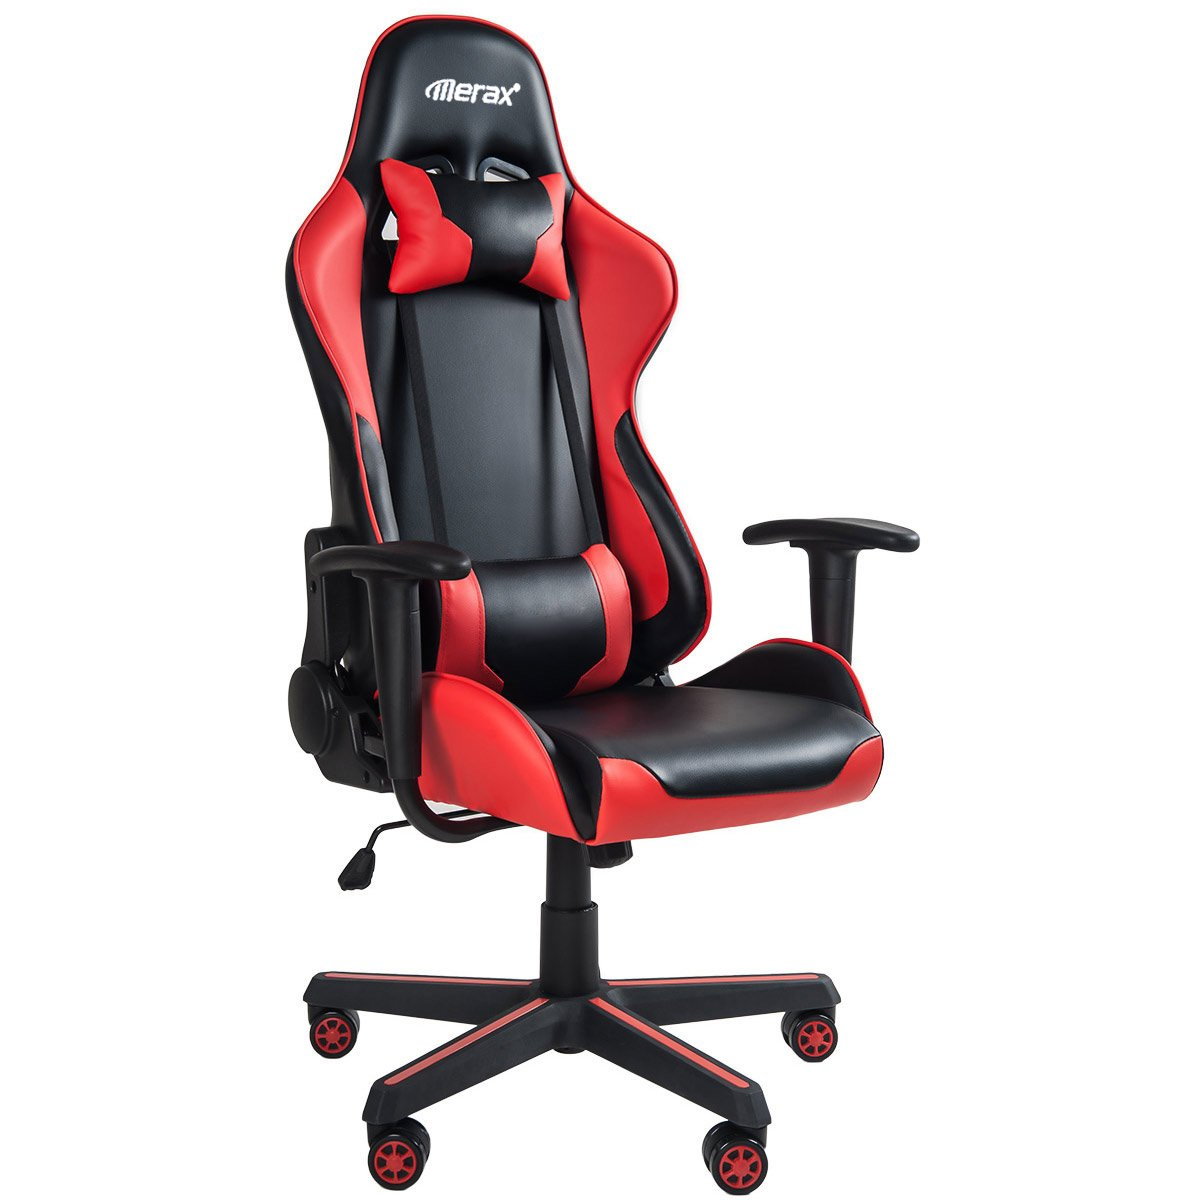 Merax Ergonomic High Back Swivel Racing Style Gaming Chair PU Leather with Lumbar Support and Headrest (Red) by Merax